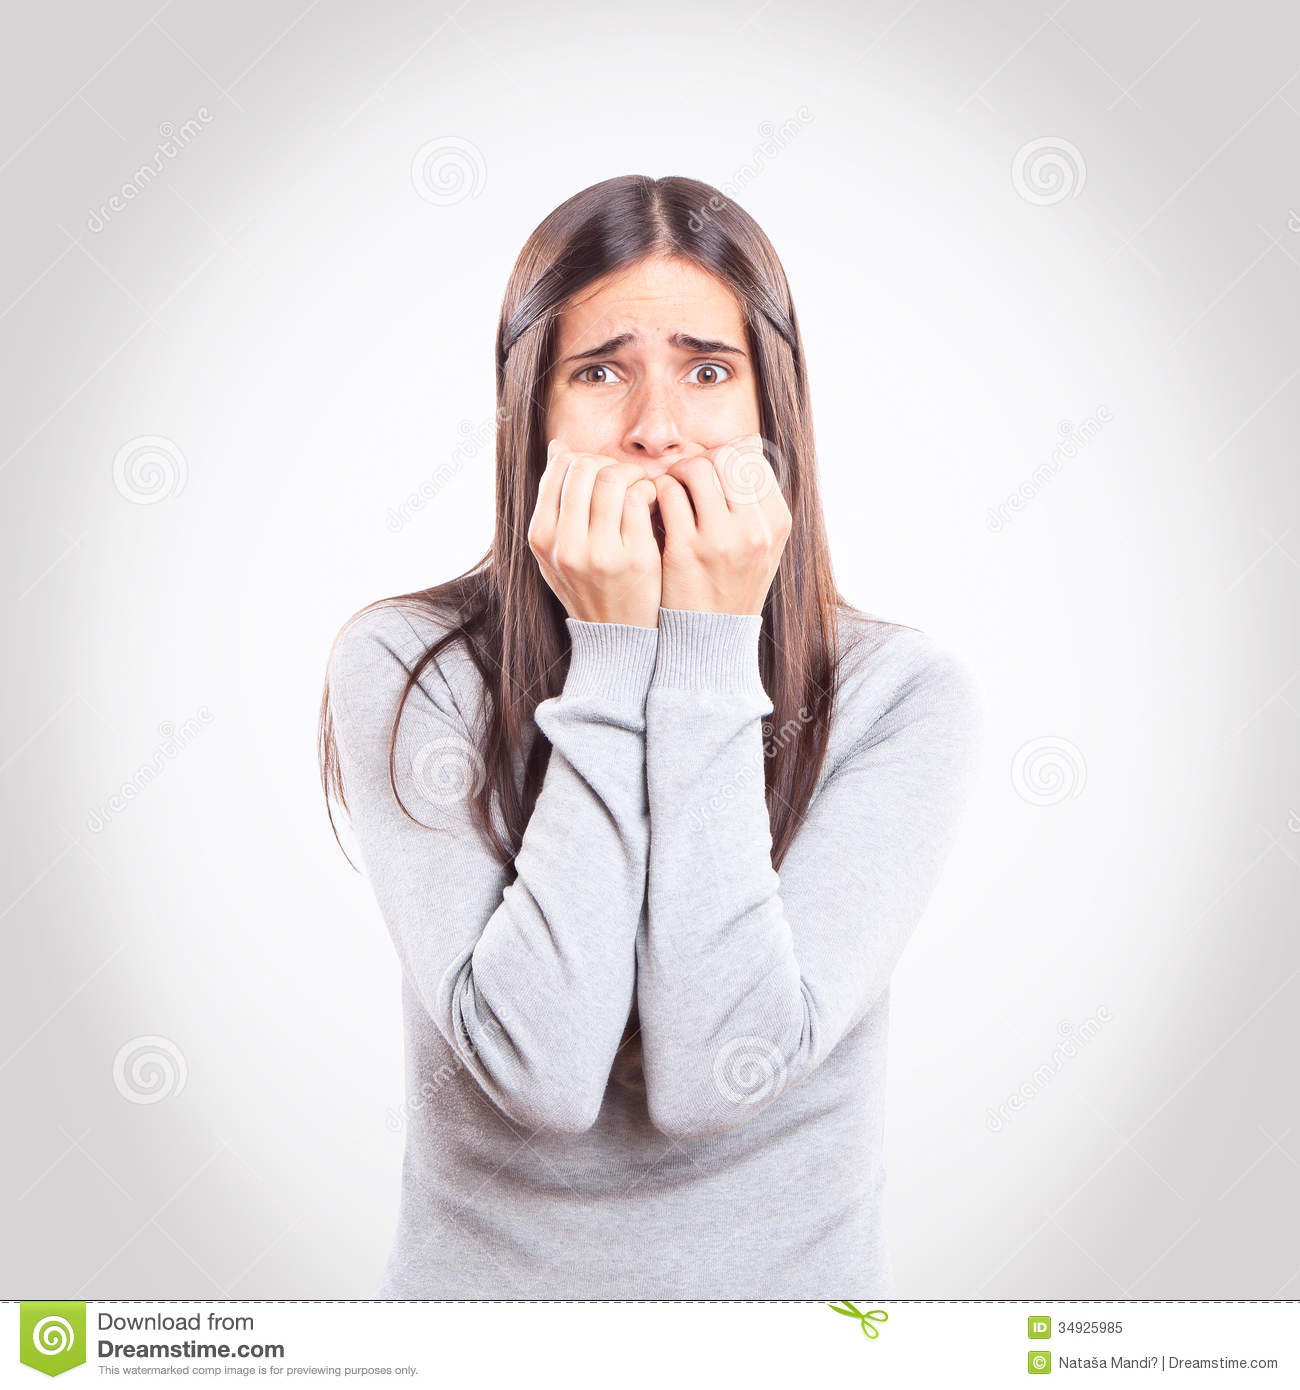 young worried girl stock image image of frustration 34925985